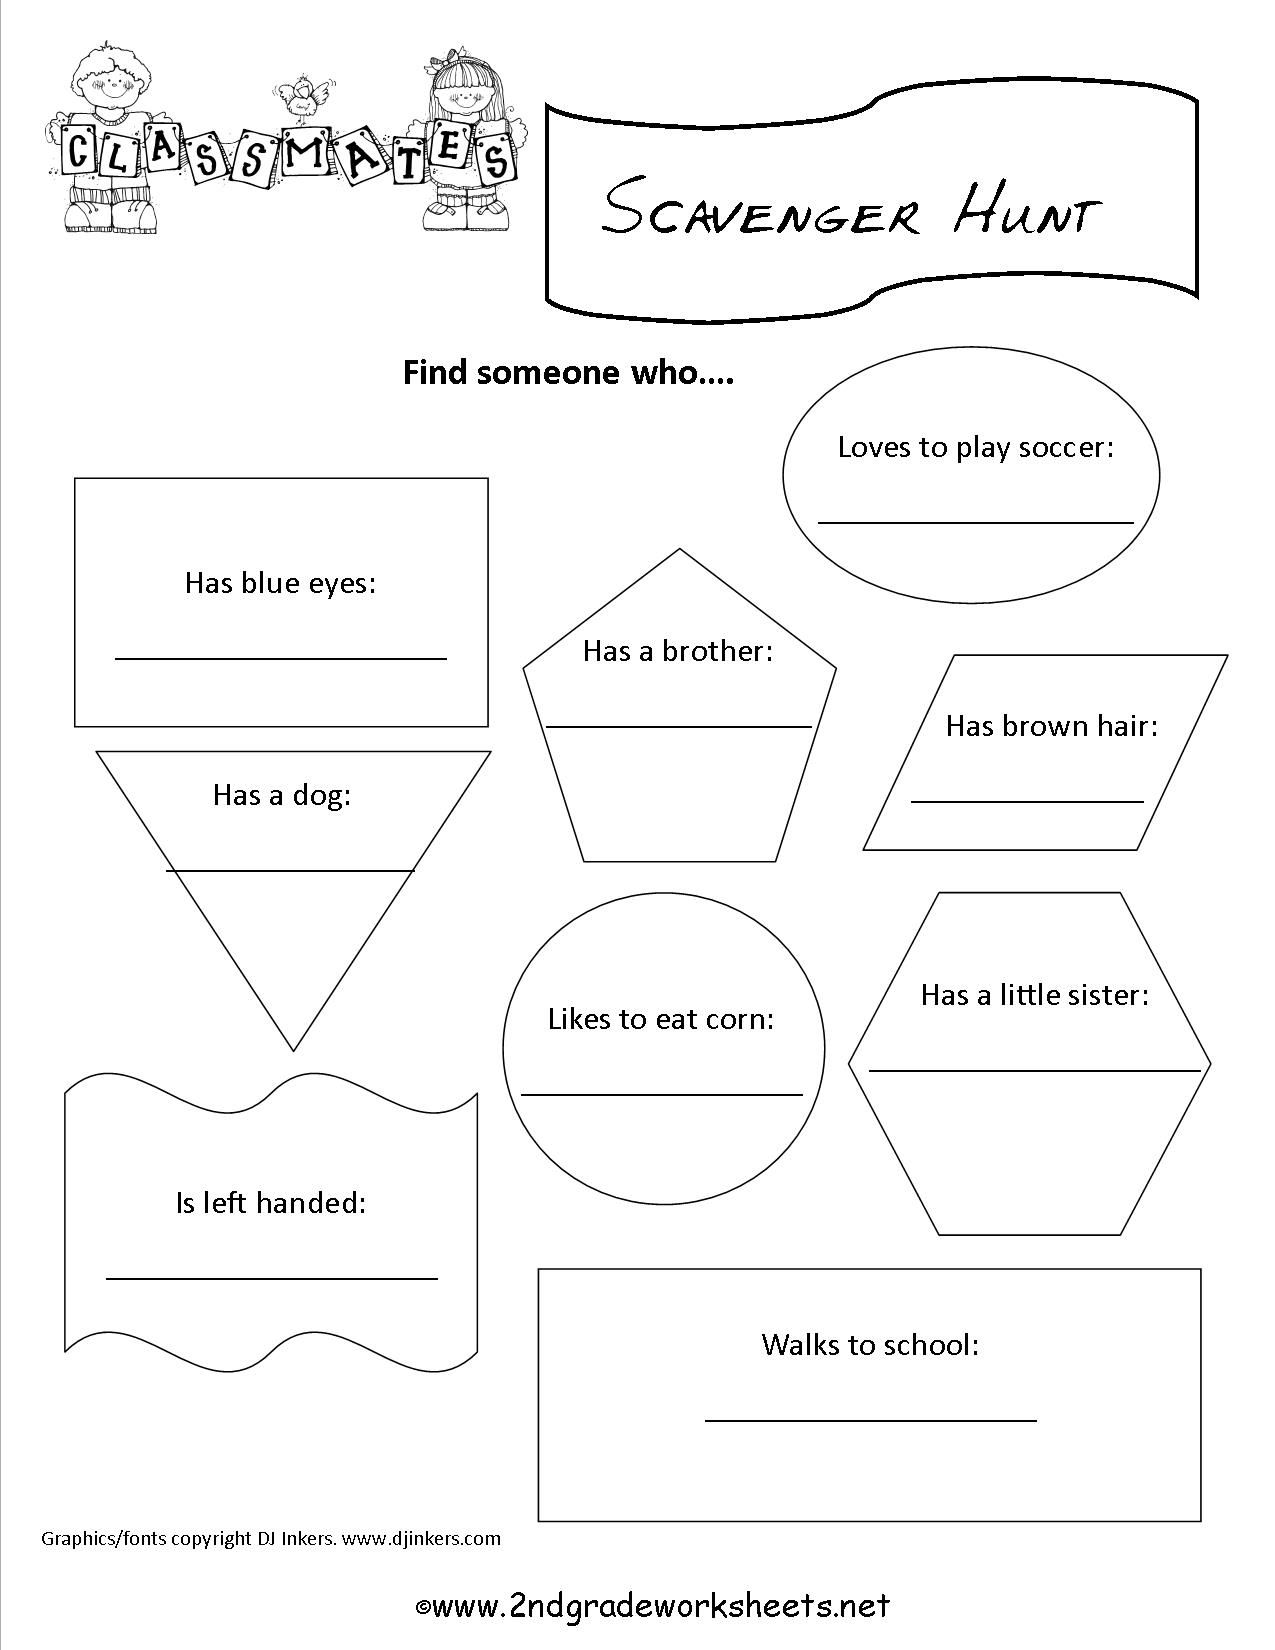 Fun Worksheets For Middle School